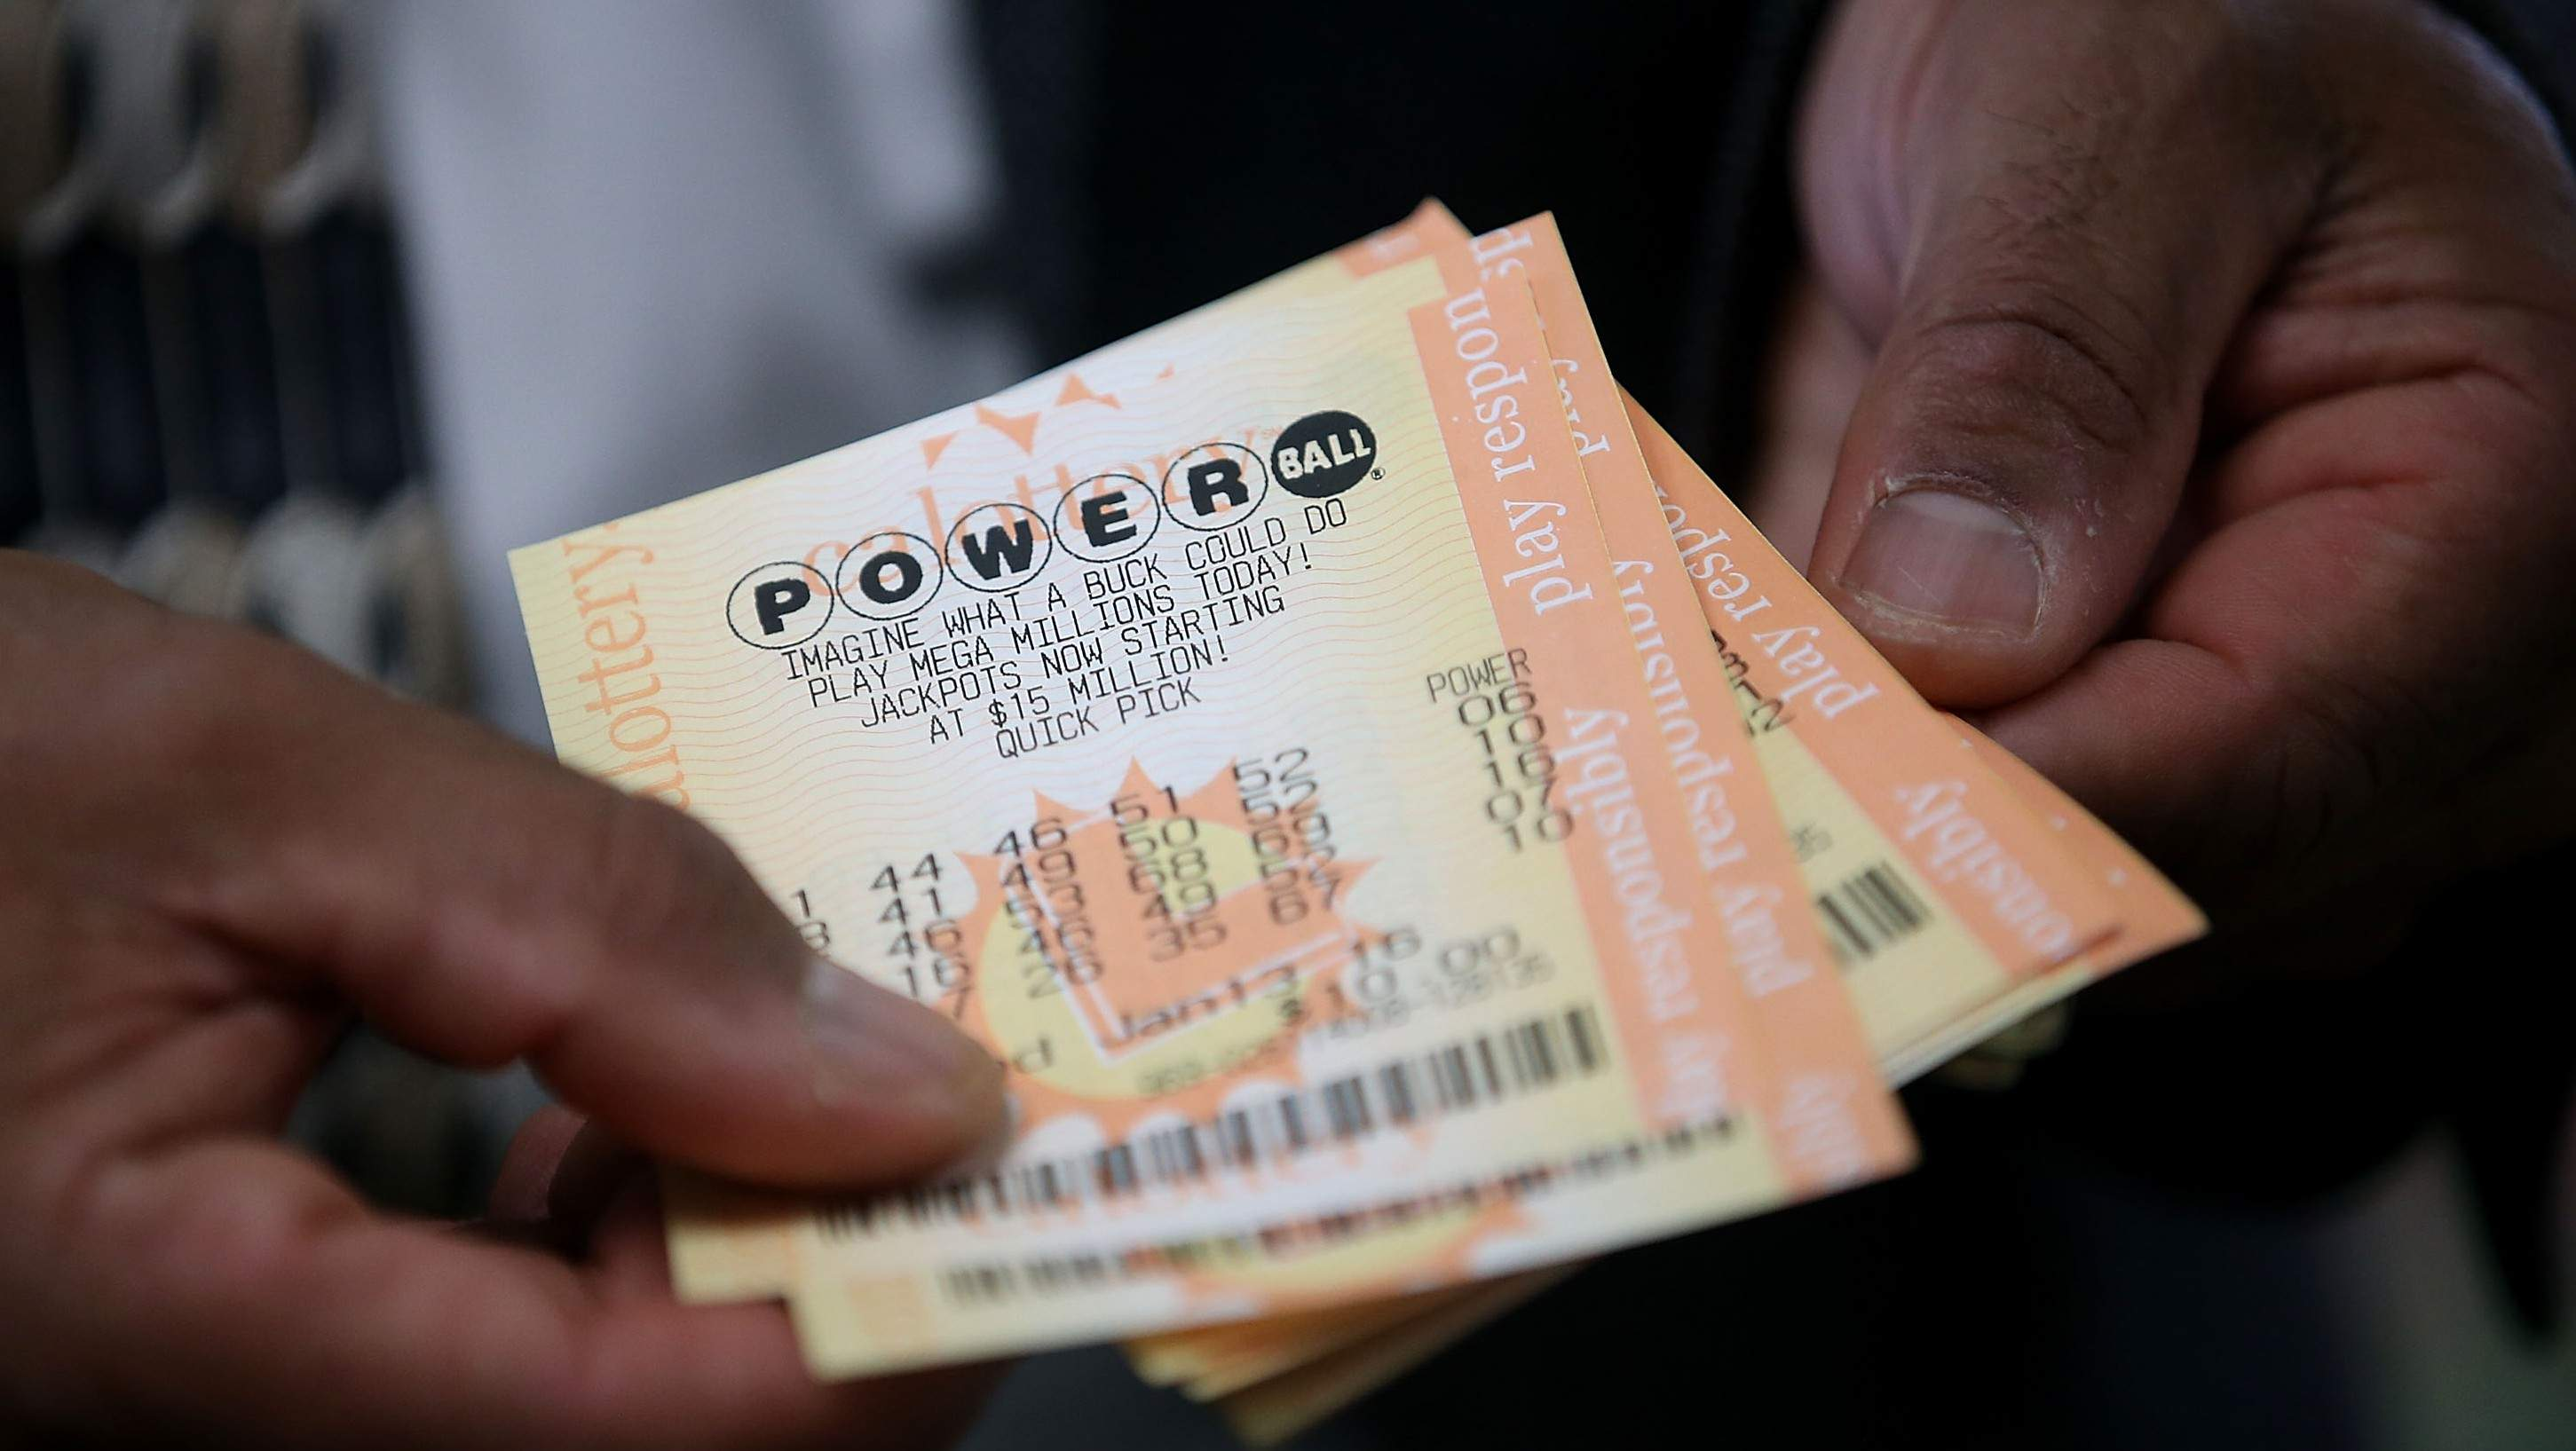 powerball live drawing channel photo - 1